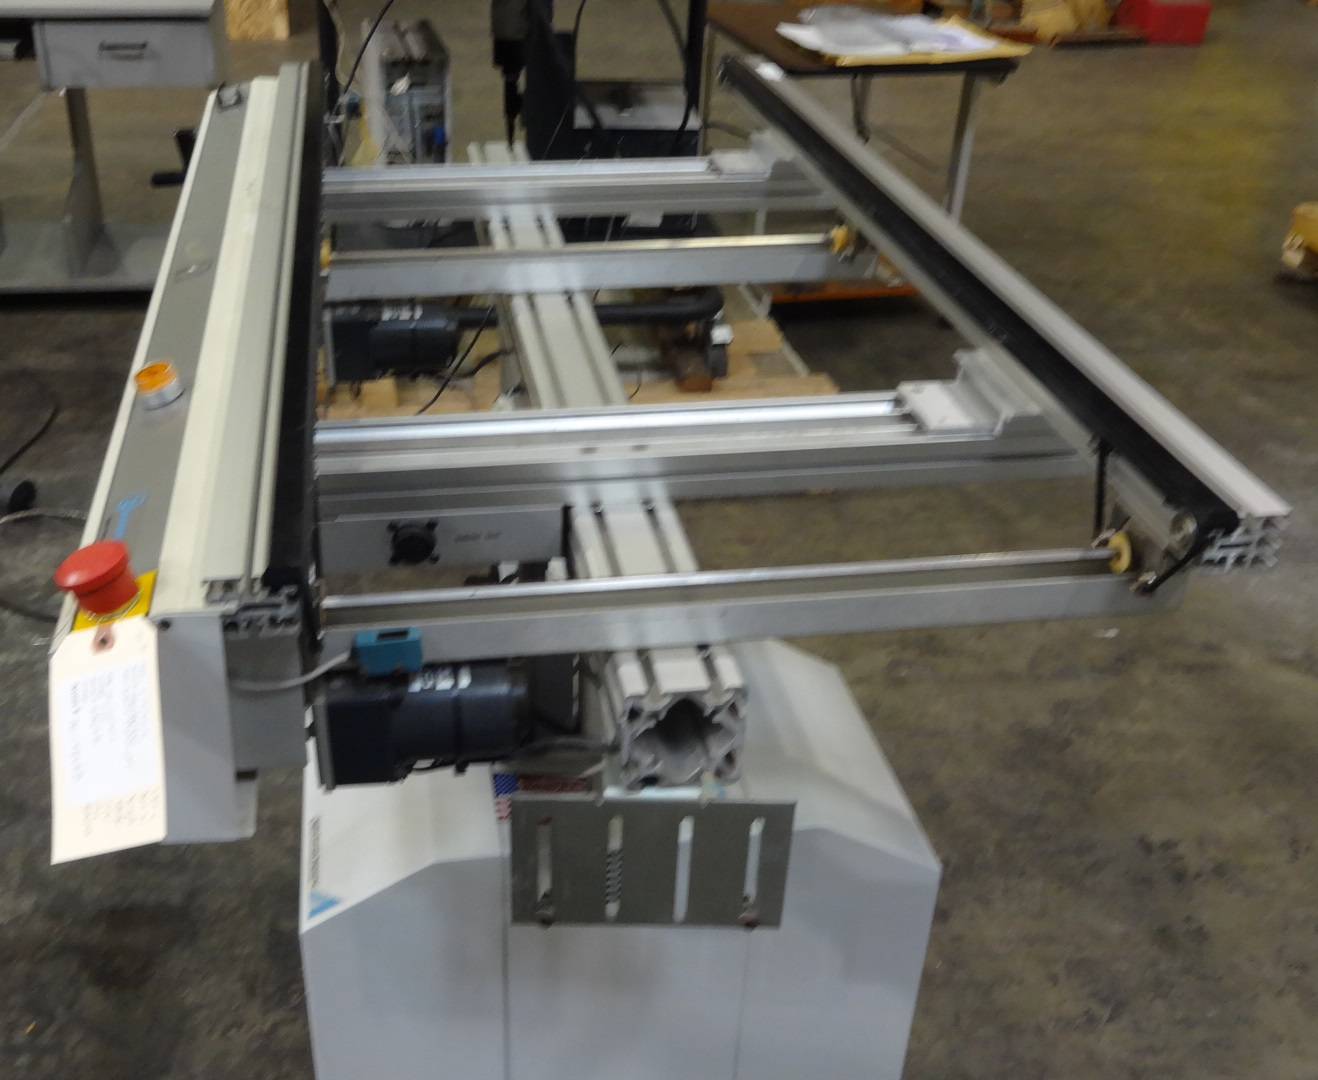 Recon Inc. sellsUNIVERSAL 5362I CONVEYORS